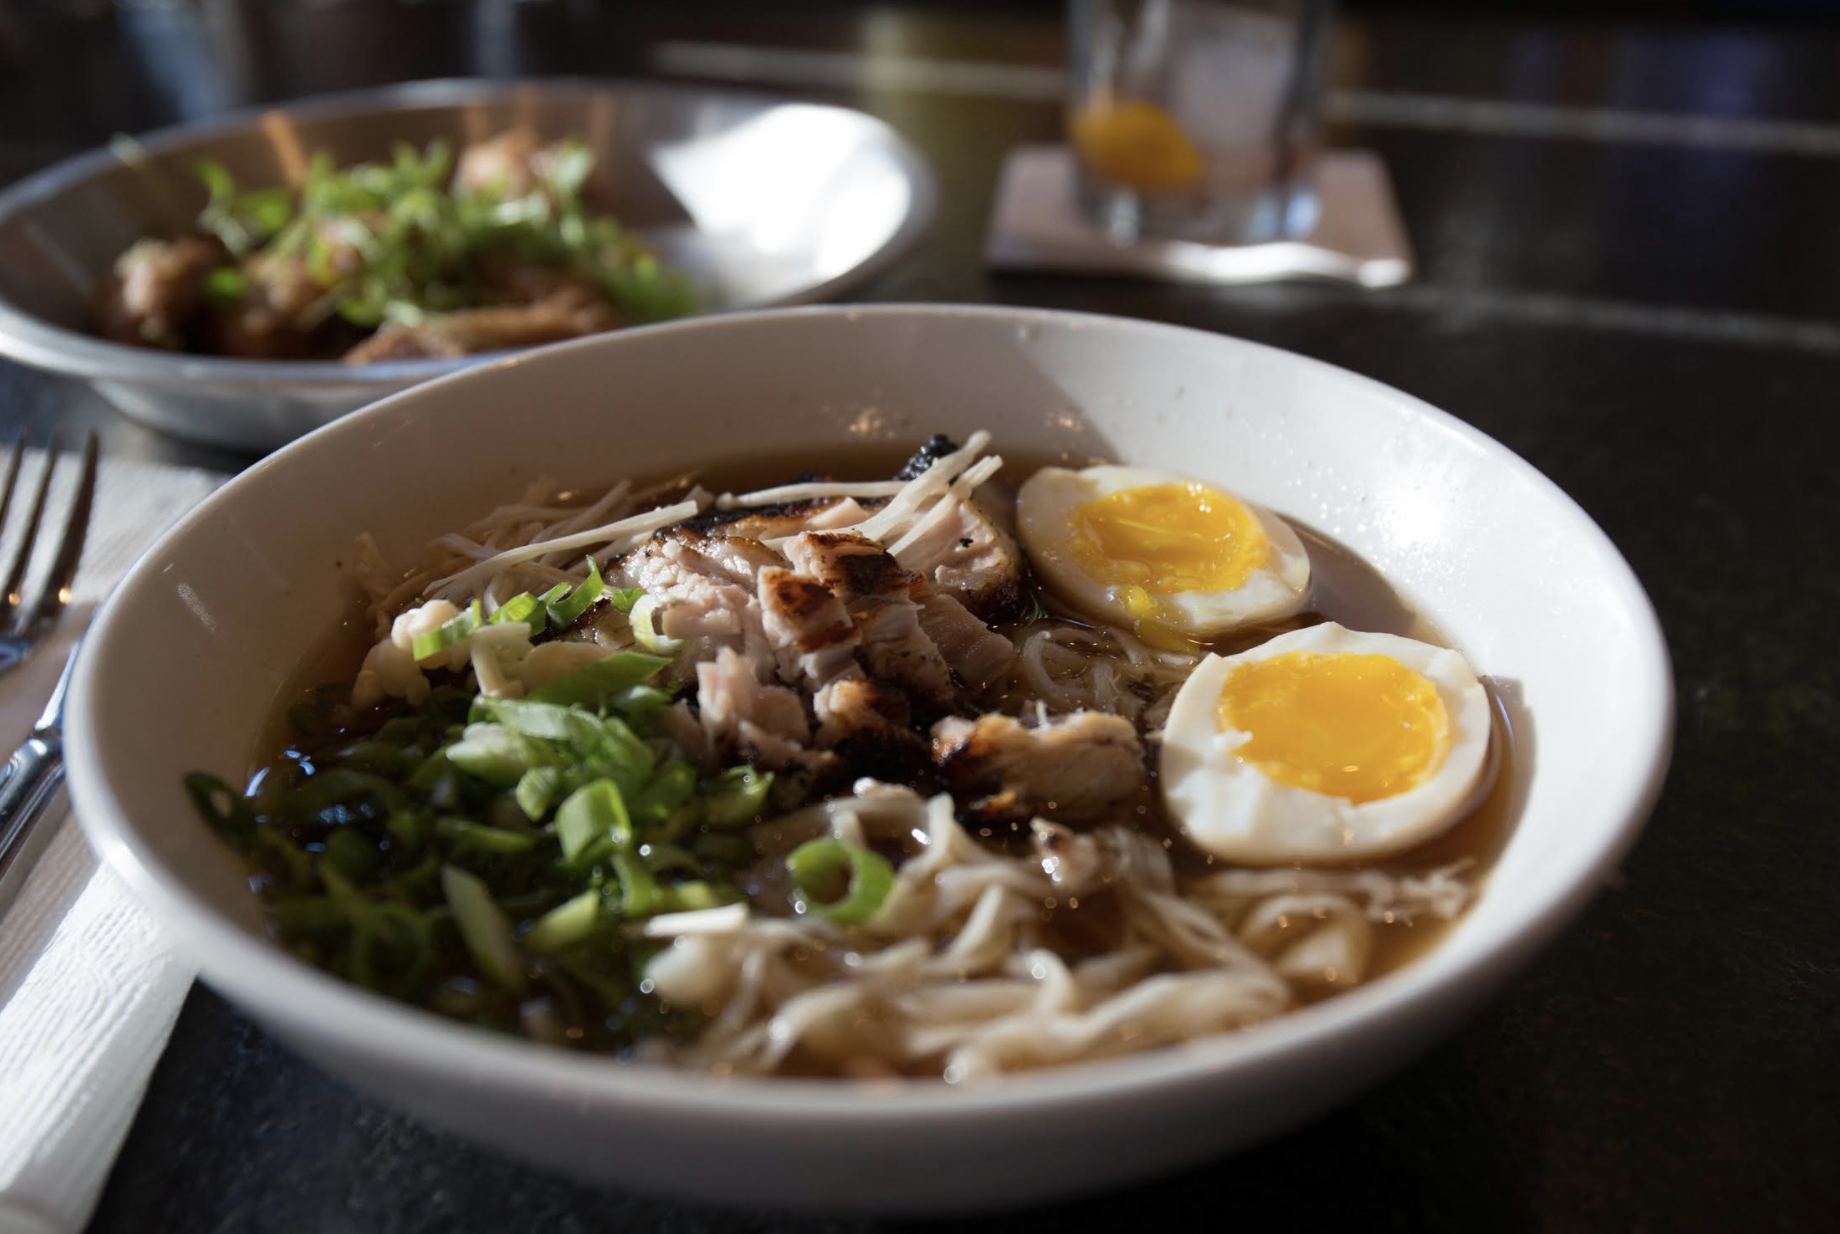 Tonkotsu Ramen at Gaijin Noodle Bar. Credit: Mark Chandler